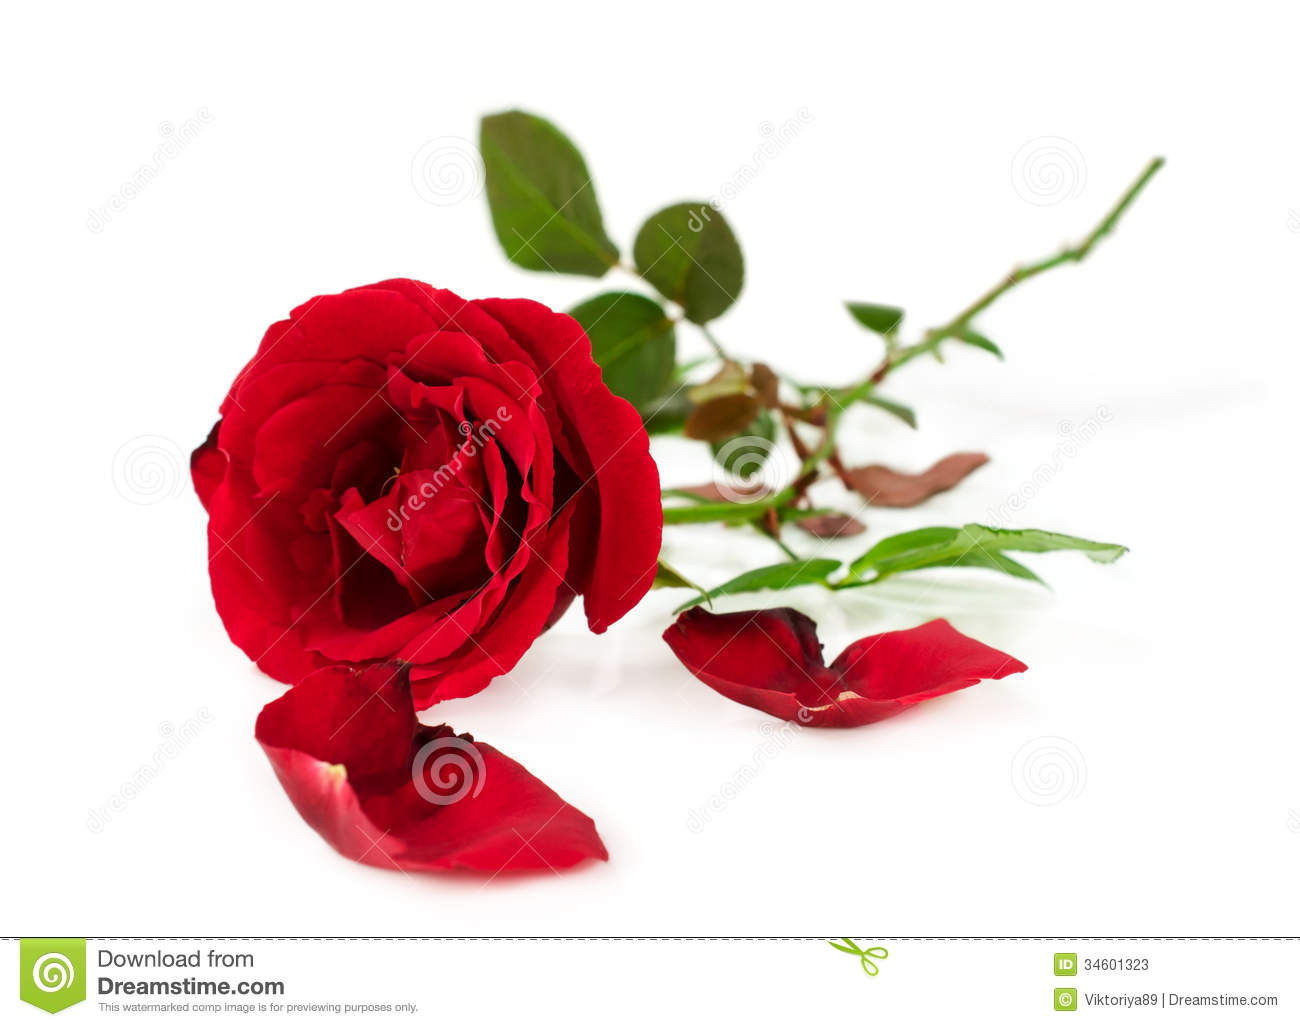 Beautiful Single Red Rose Flower Isolated Royalty Free: Single Red Rose Stock Image. Image Of Love, Green, Natural